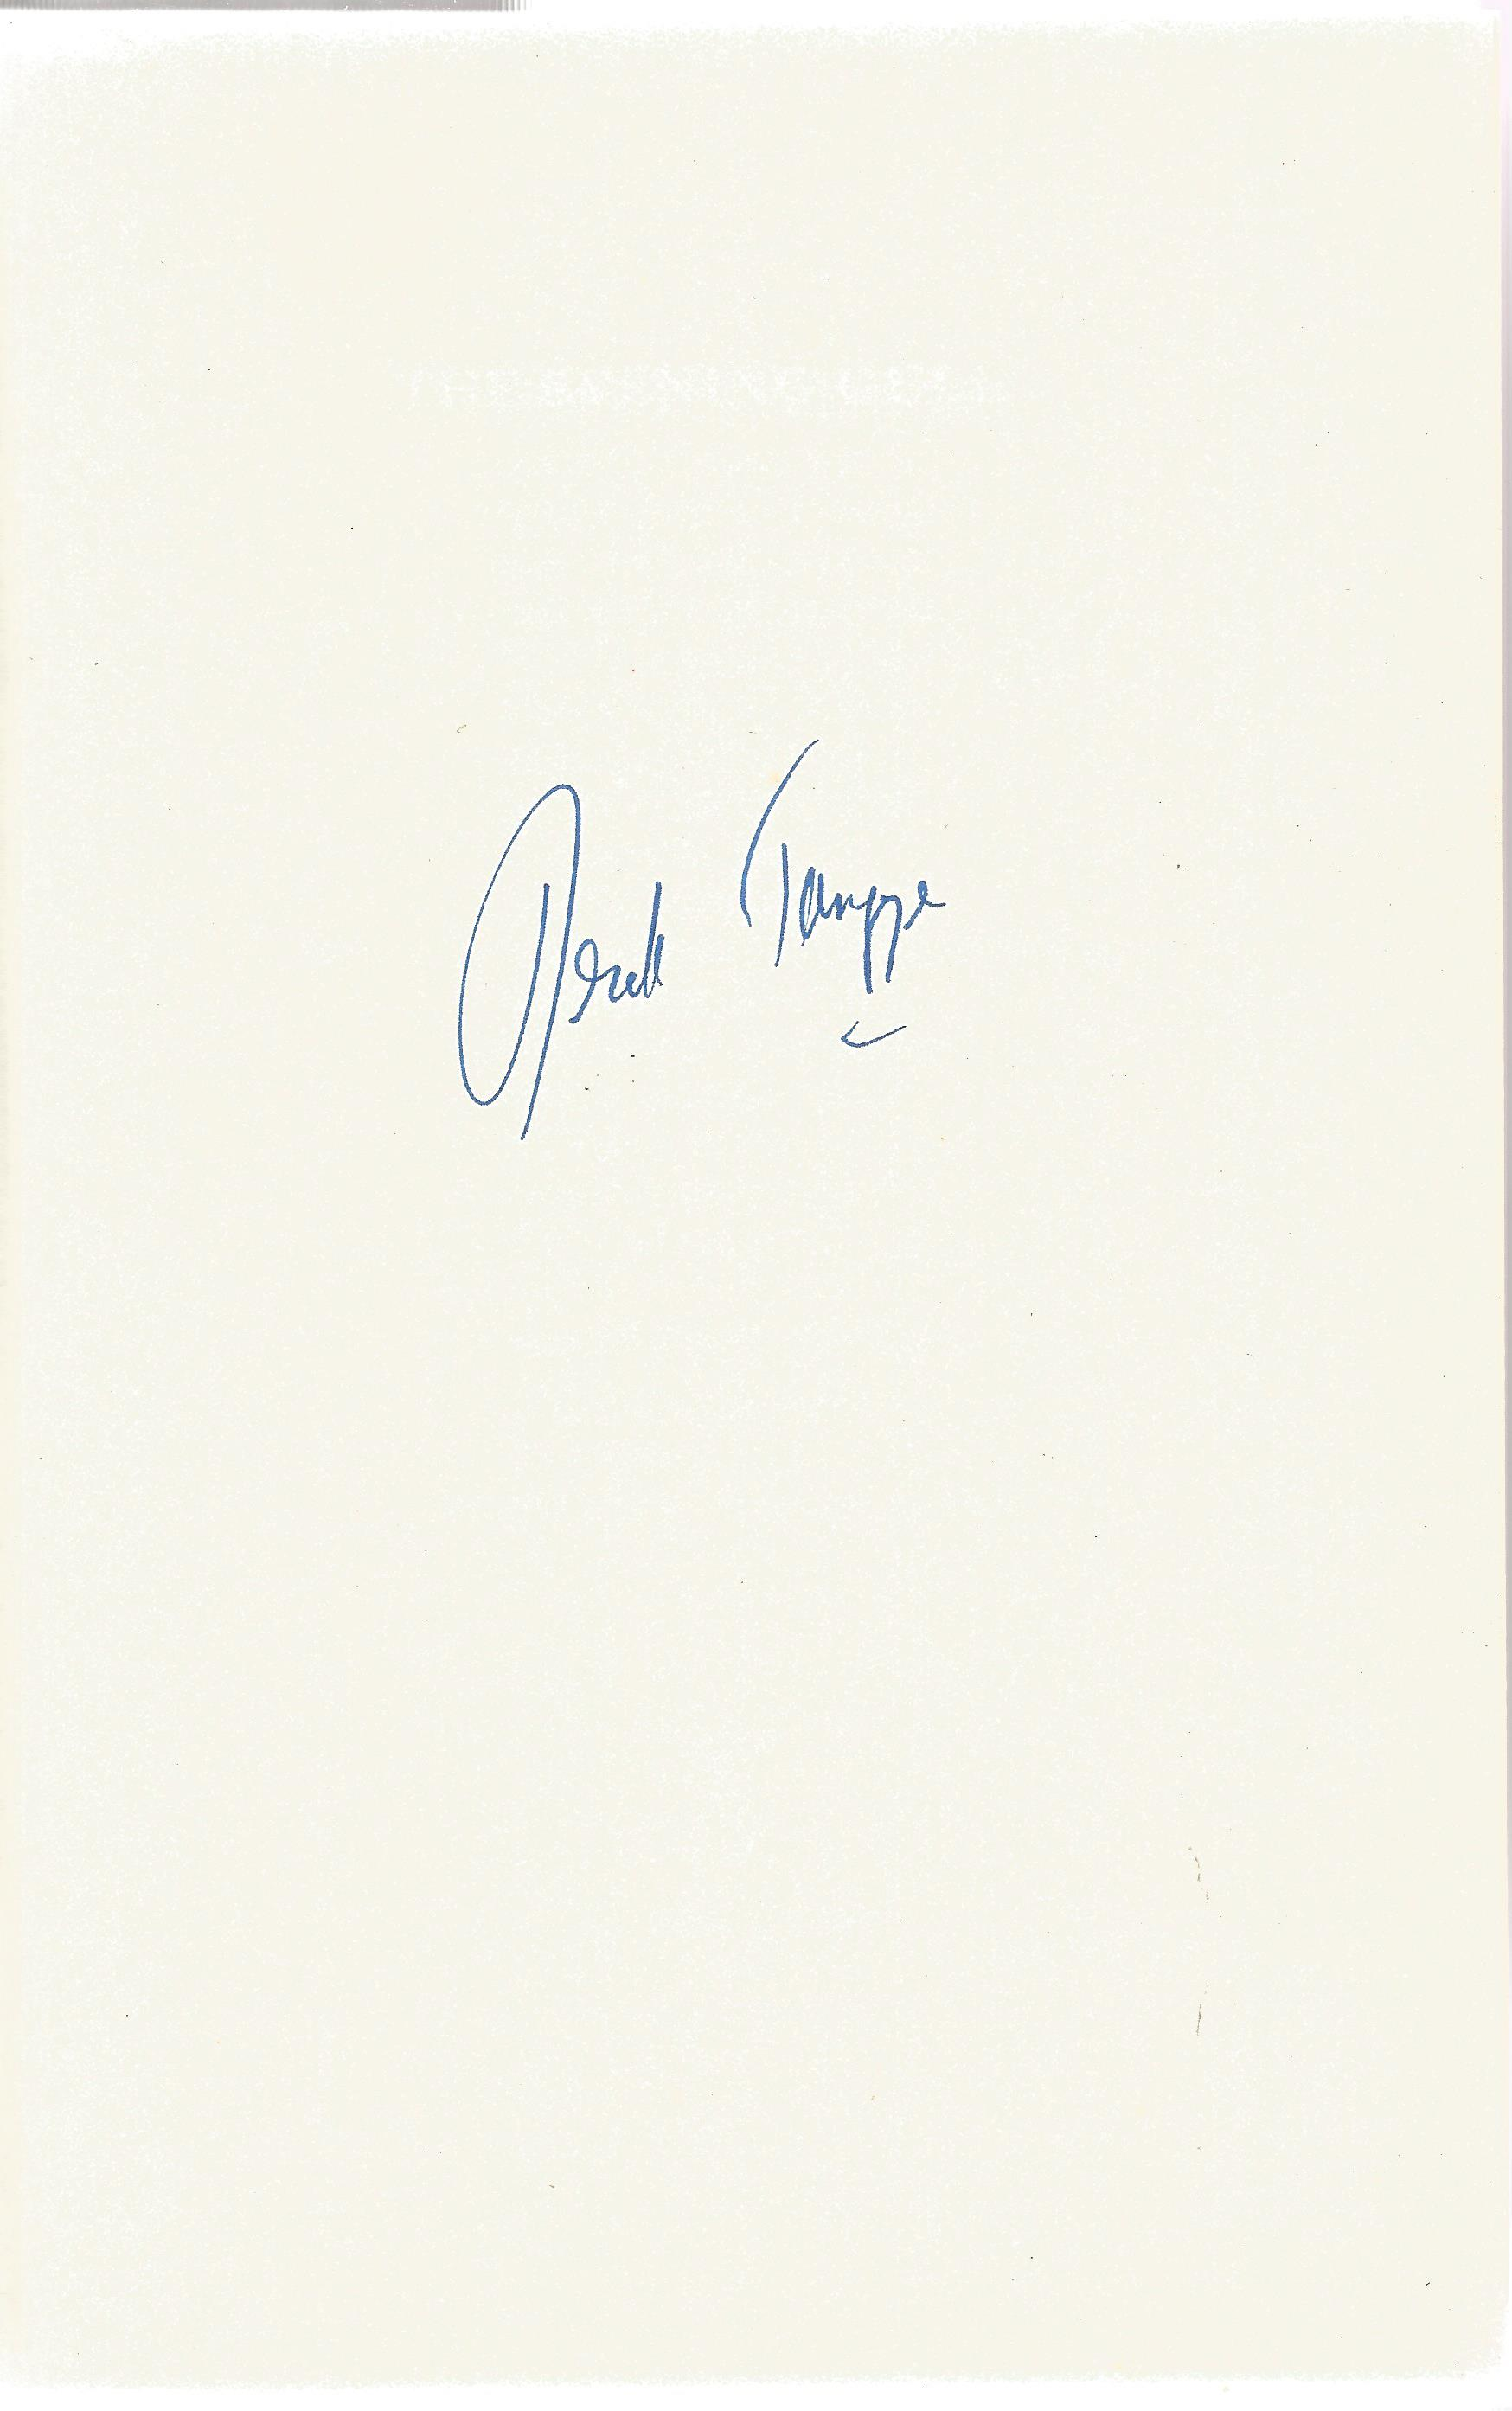 Derek Tangye Hardback Book The Evening Cull signed by the Author on the First Page First Edition - Image 2 of 2